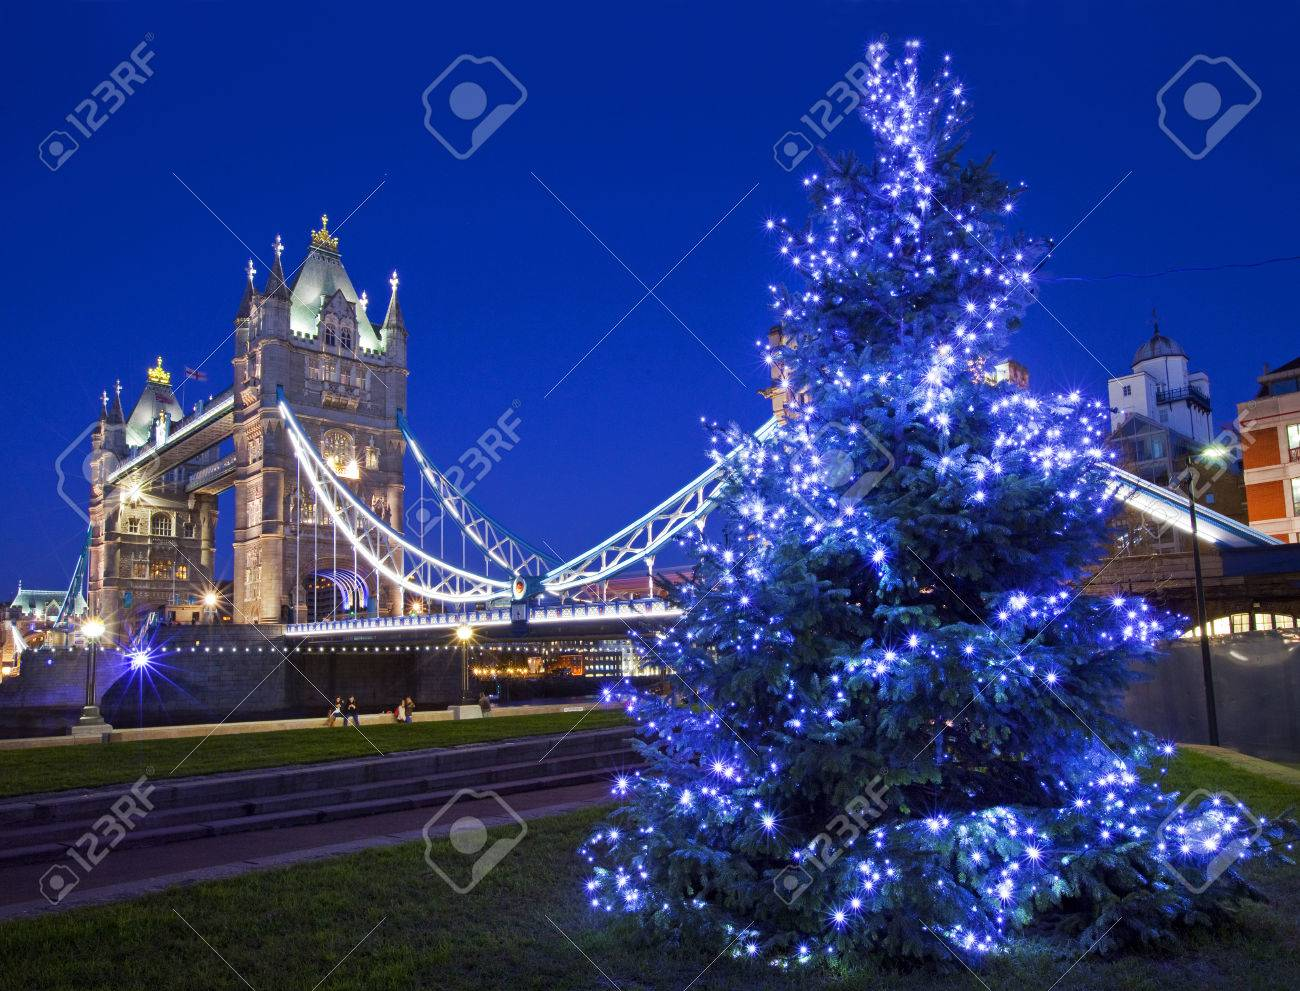 LONDON, UK - 19TH DECEMBER 2014: A beautiful view of Tower Bridge during Christmas time in London on 19th December 2014. - 34780966